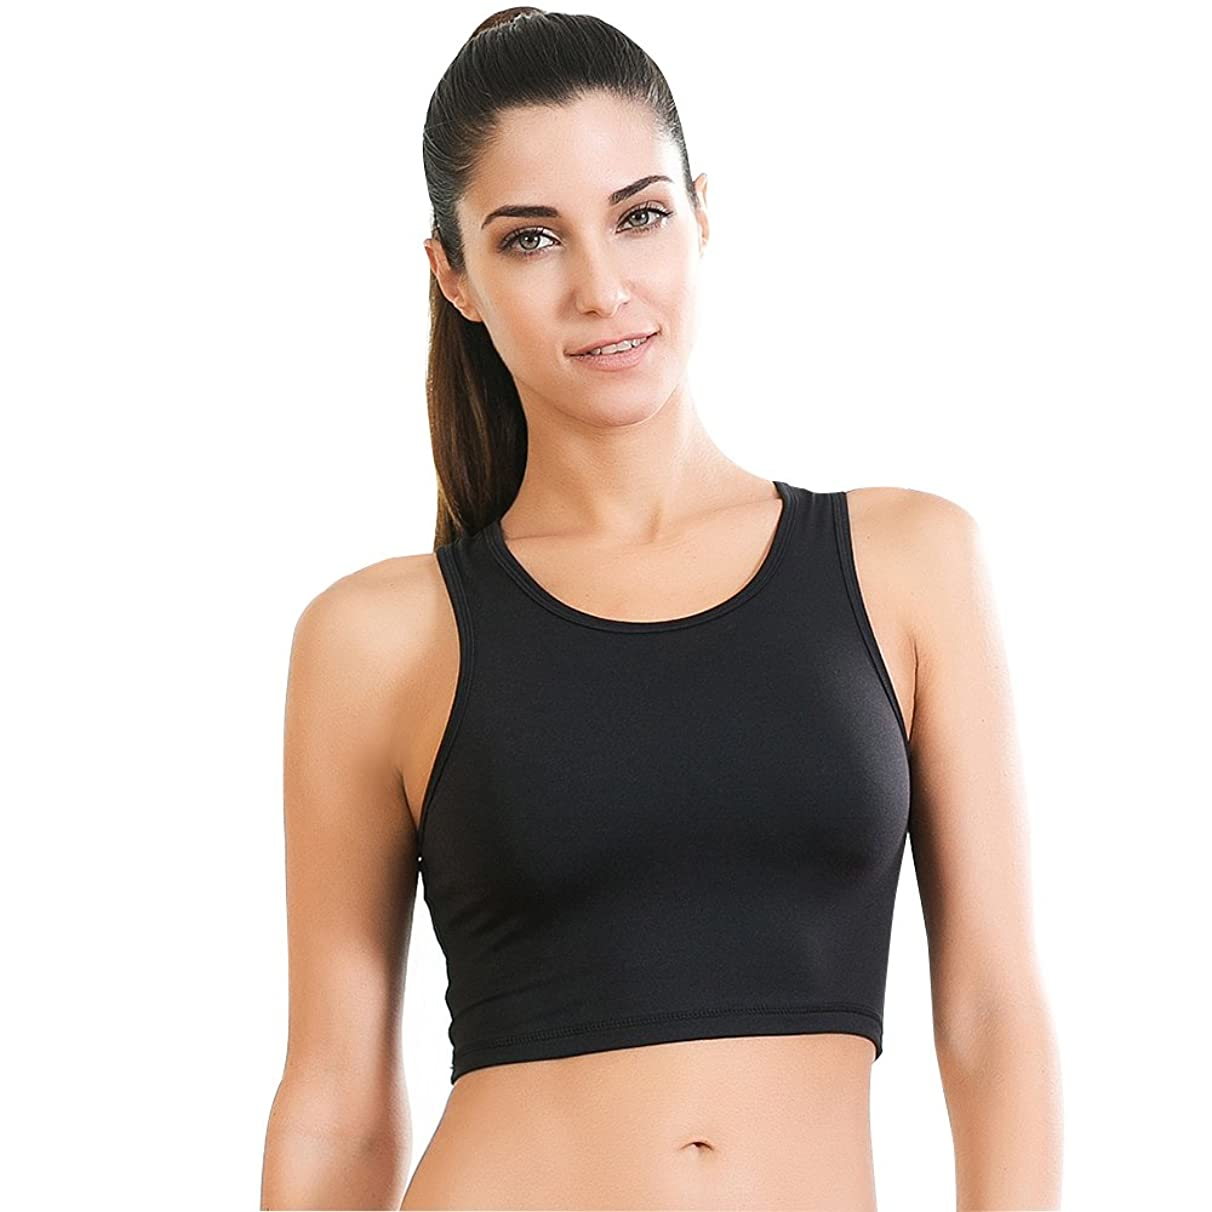 Move With You Womens Crop Tank Tops Workout Running High Neck Sports Bra with Built-in Bra